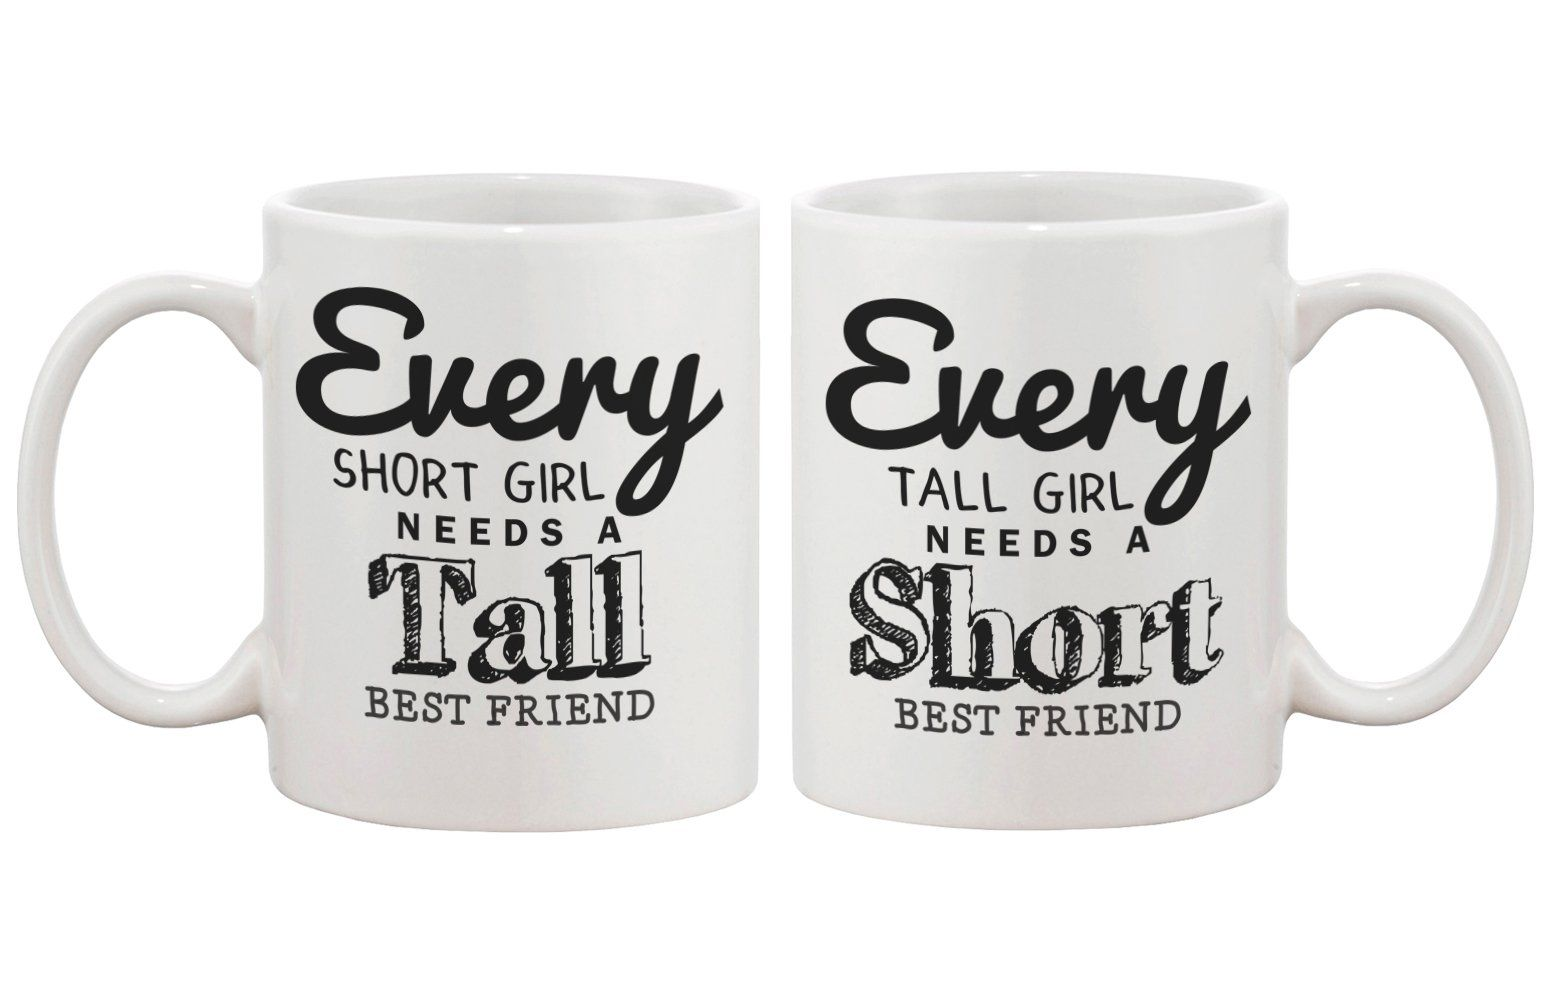 Cute Coffee Mugs For Best Friends Every Short Girl Needs